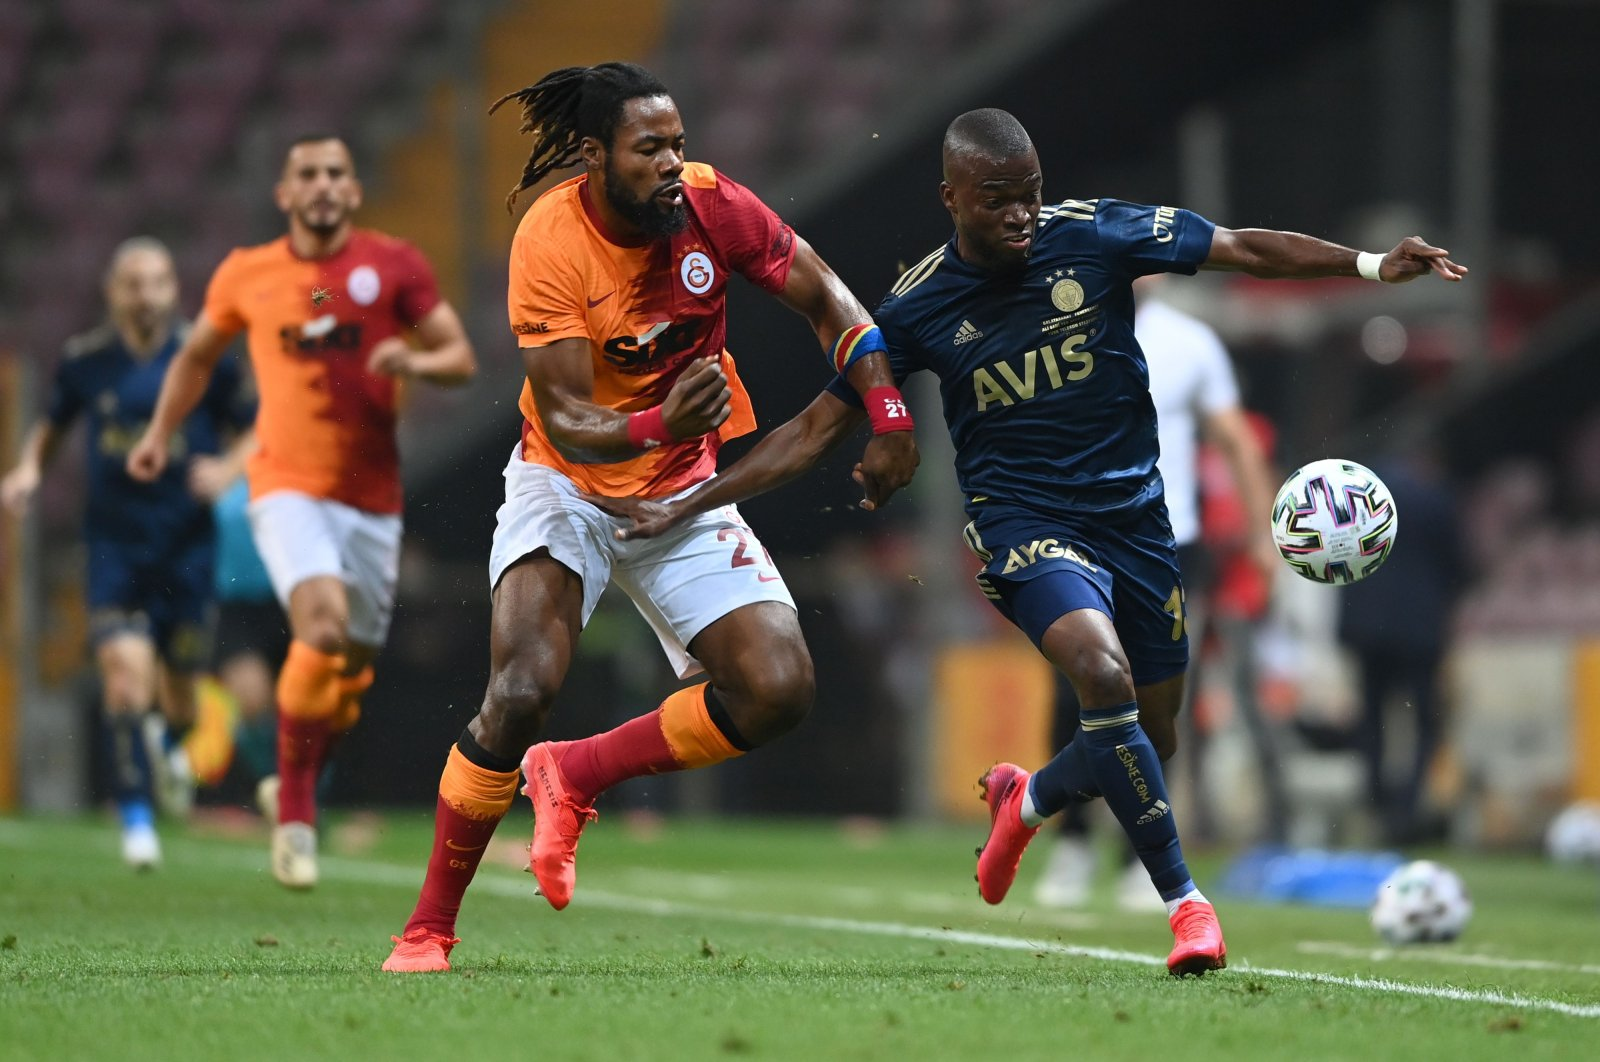 Fenerbahçe's Ecuadorian forward Enner Valencia (R) vies for the ball with Galatasaray's Congoloses defender Christian Luyindama during the Turkish Süper Lig football match between Galatasaray and Fenerbahçe at the Ali Sami Yen stadium in Istanbul on Sept. 27, 2020. (AFP Photo)